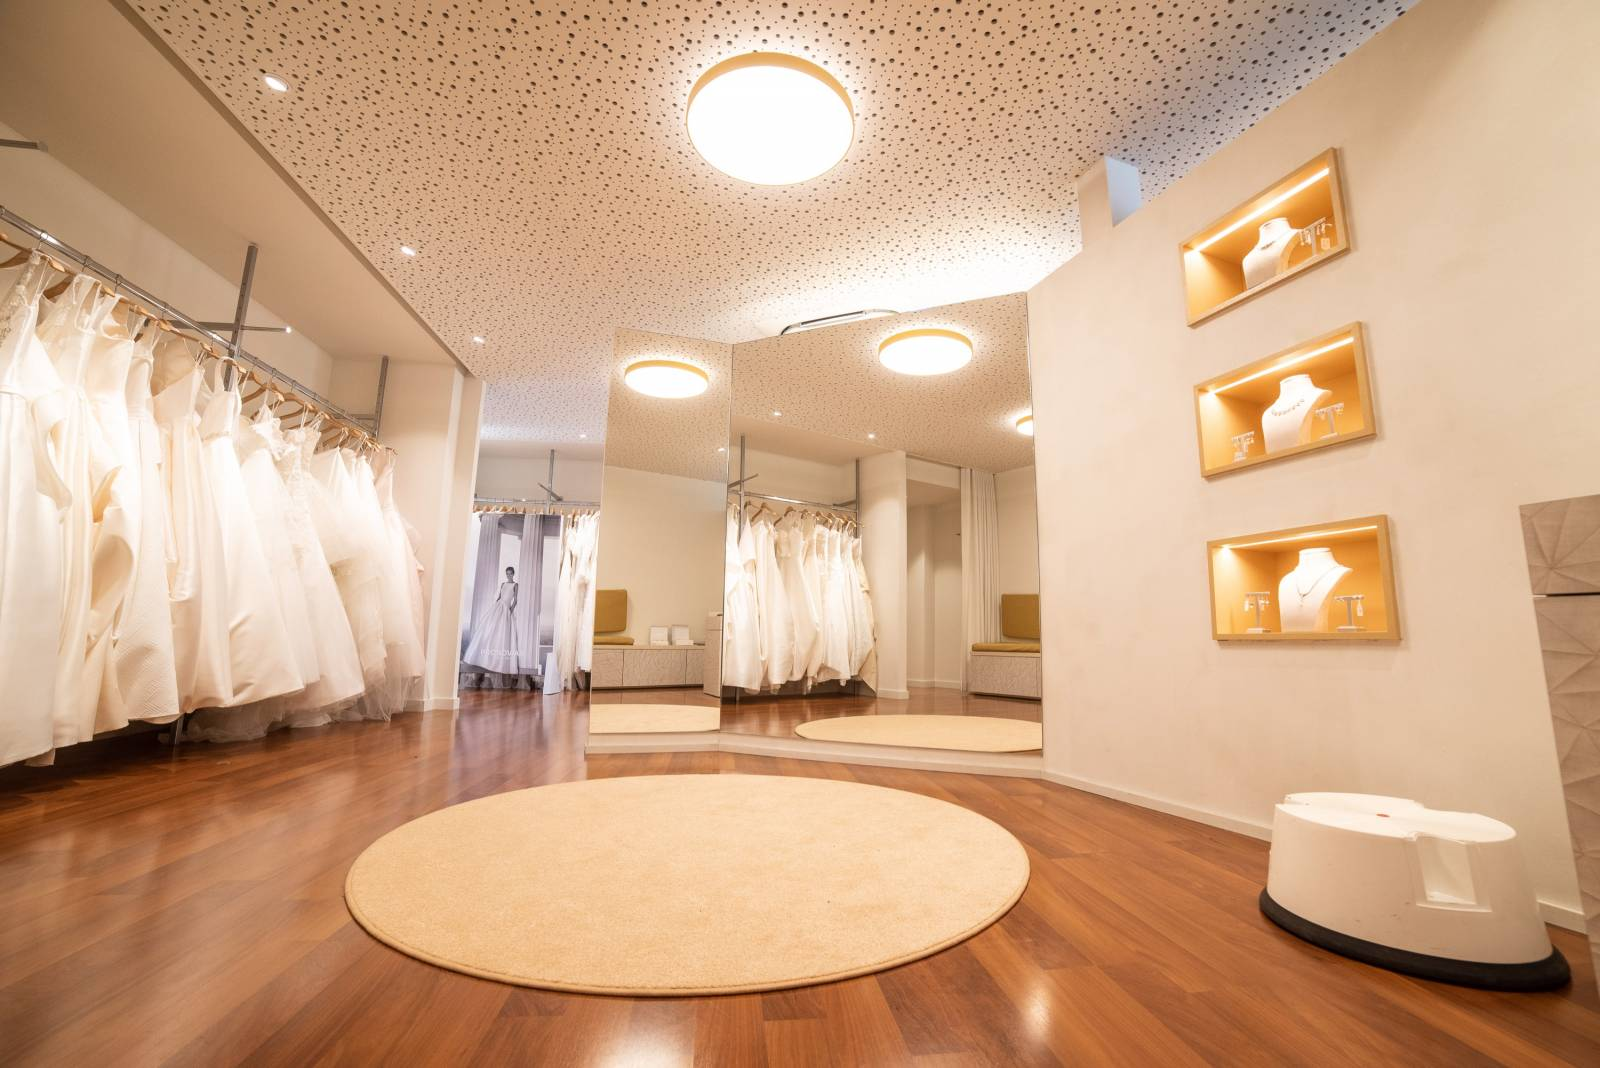 Moderna - Bruidsmode winkel - Dilbeek - House of Weddings - 2